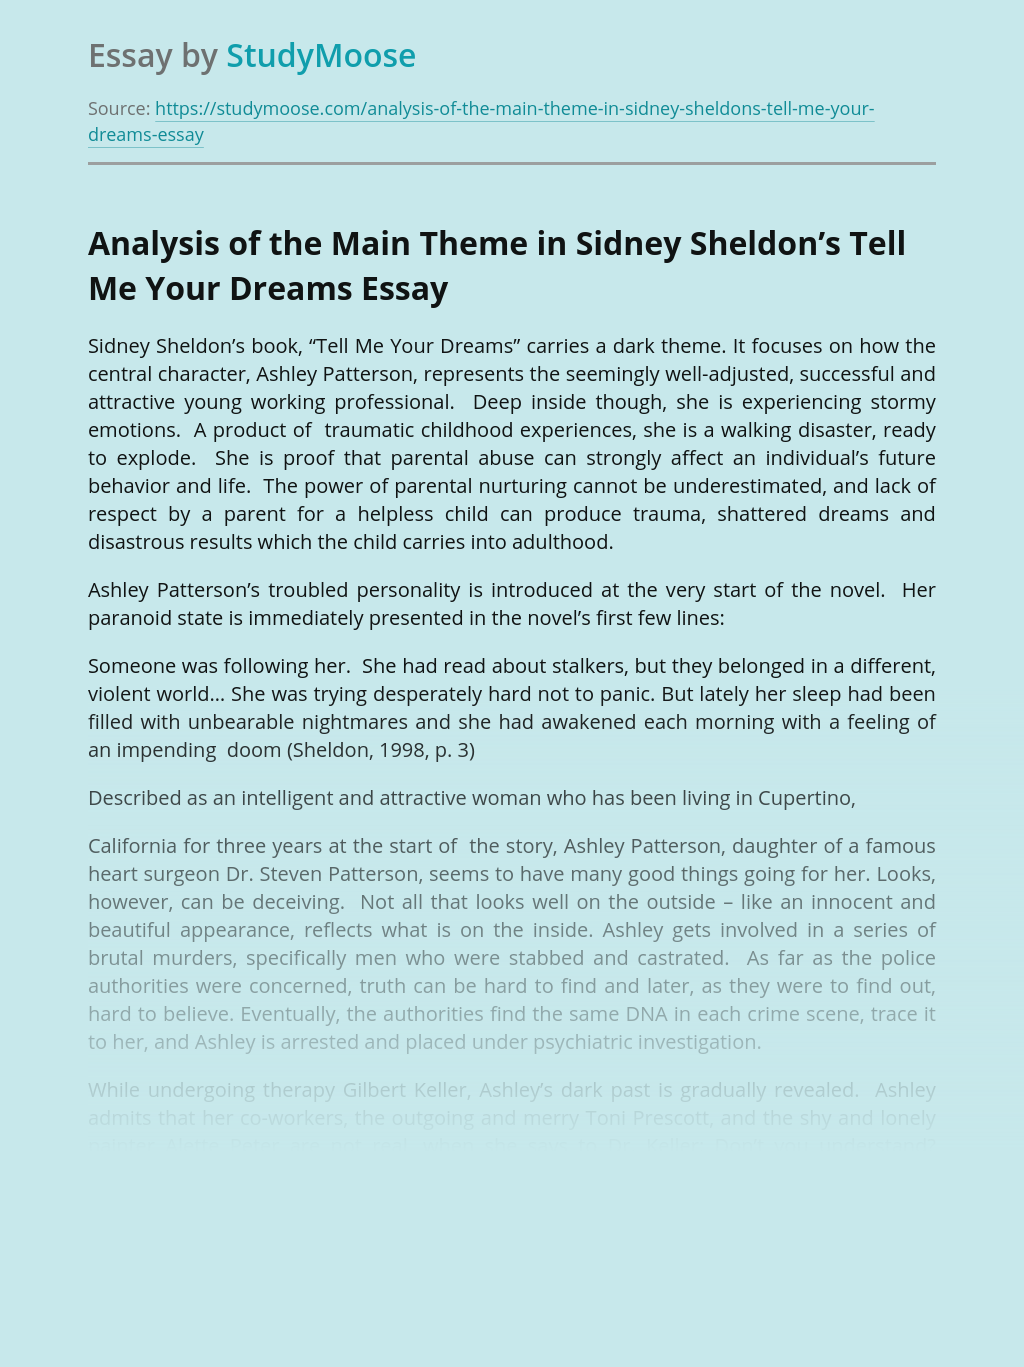 Analysis of the Main Theme in Sidney Sheldon's Tell Me Your Dreams